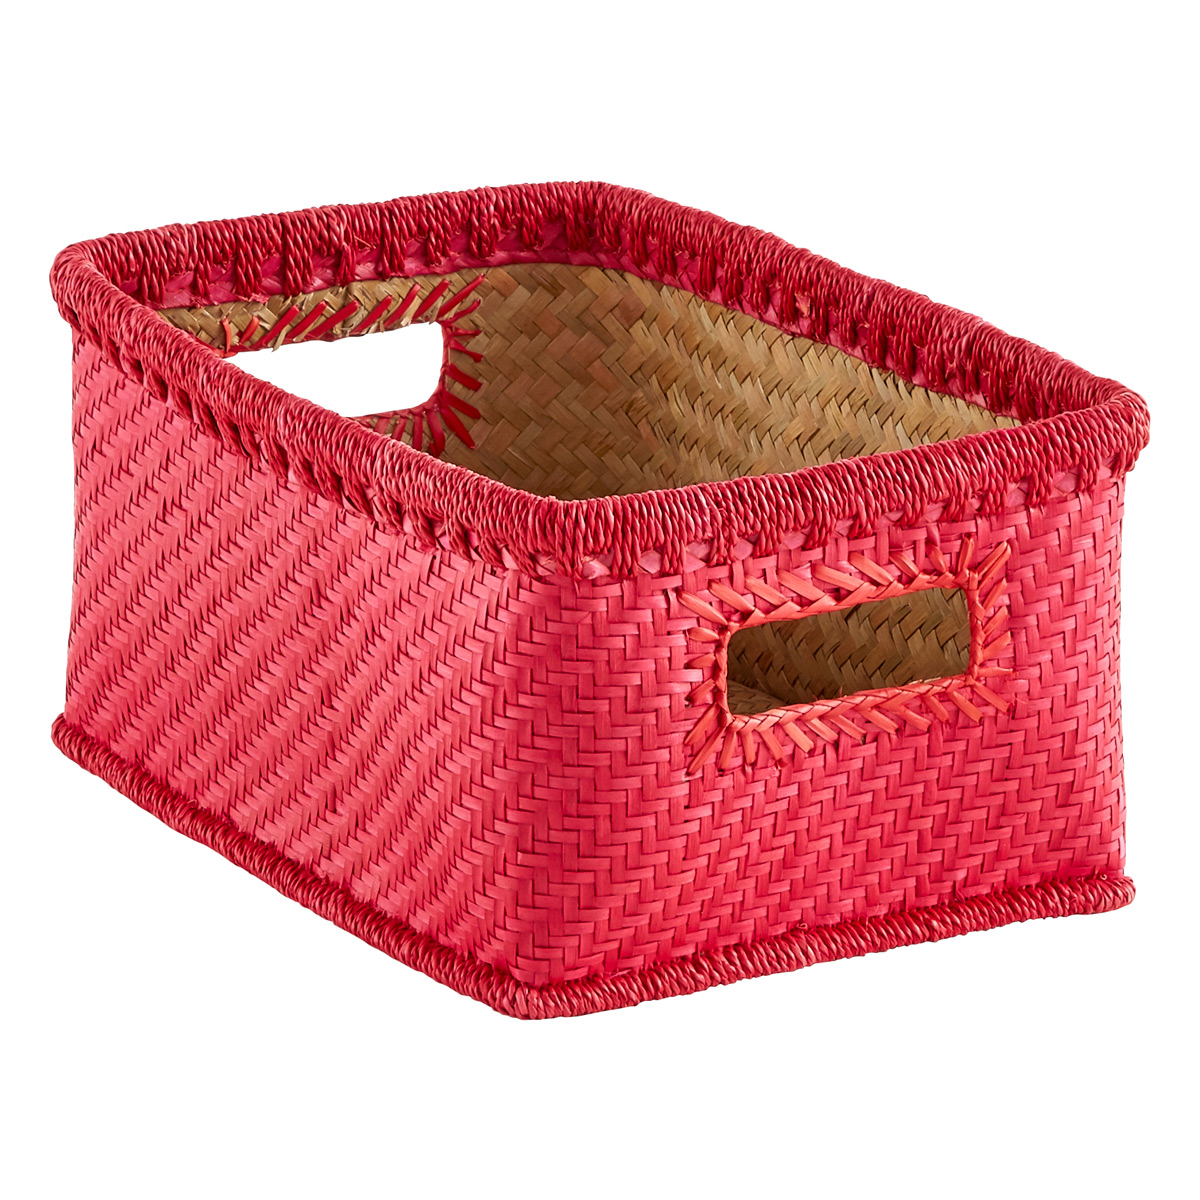 Superieur Small Palm Leaf Woven Storage Bins With Handles